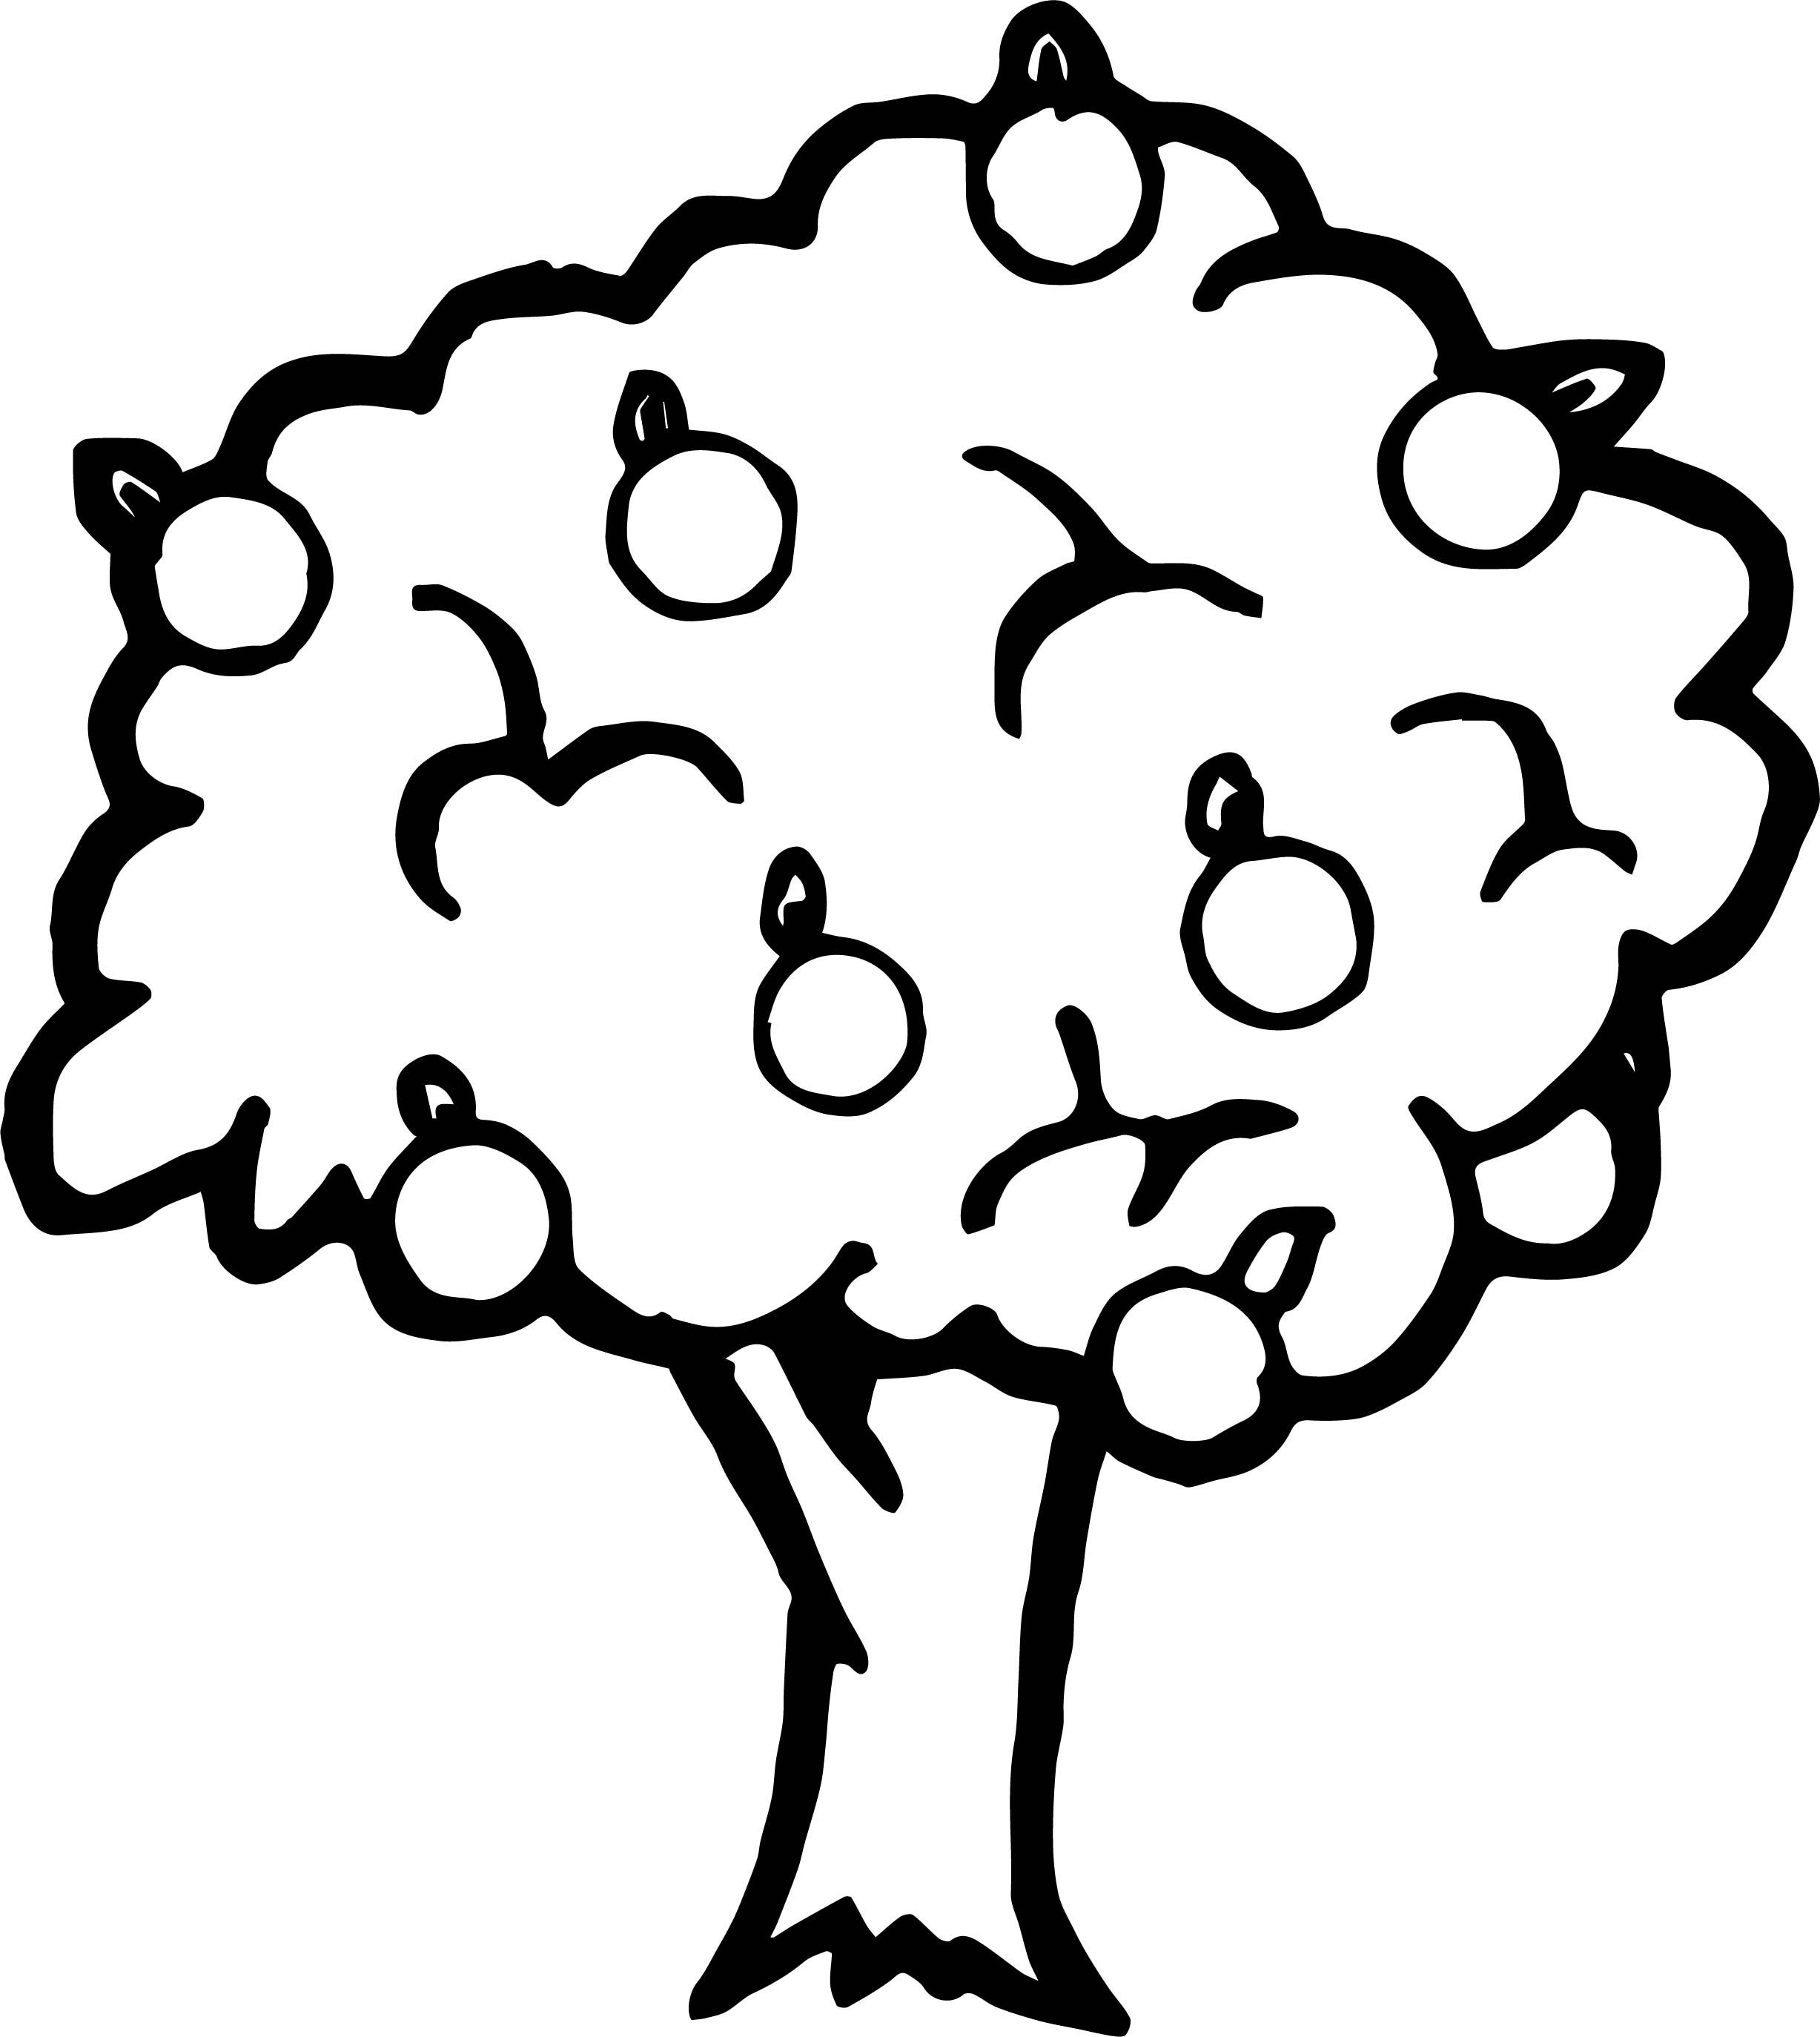 coloring page of apple tree tree to print trees kids coloring pages page coloring tree of apple